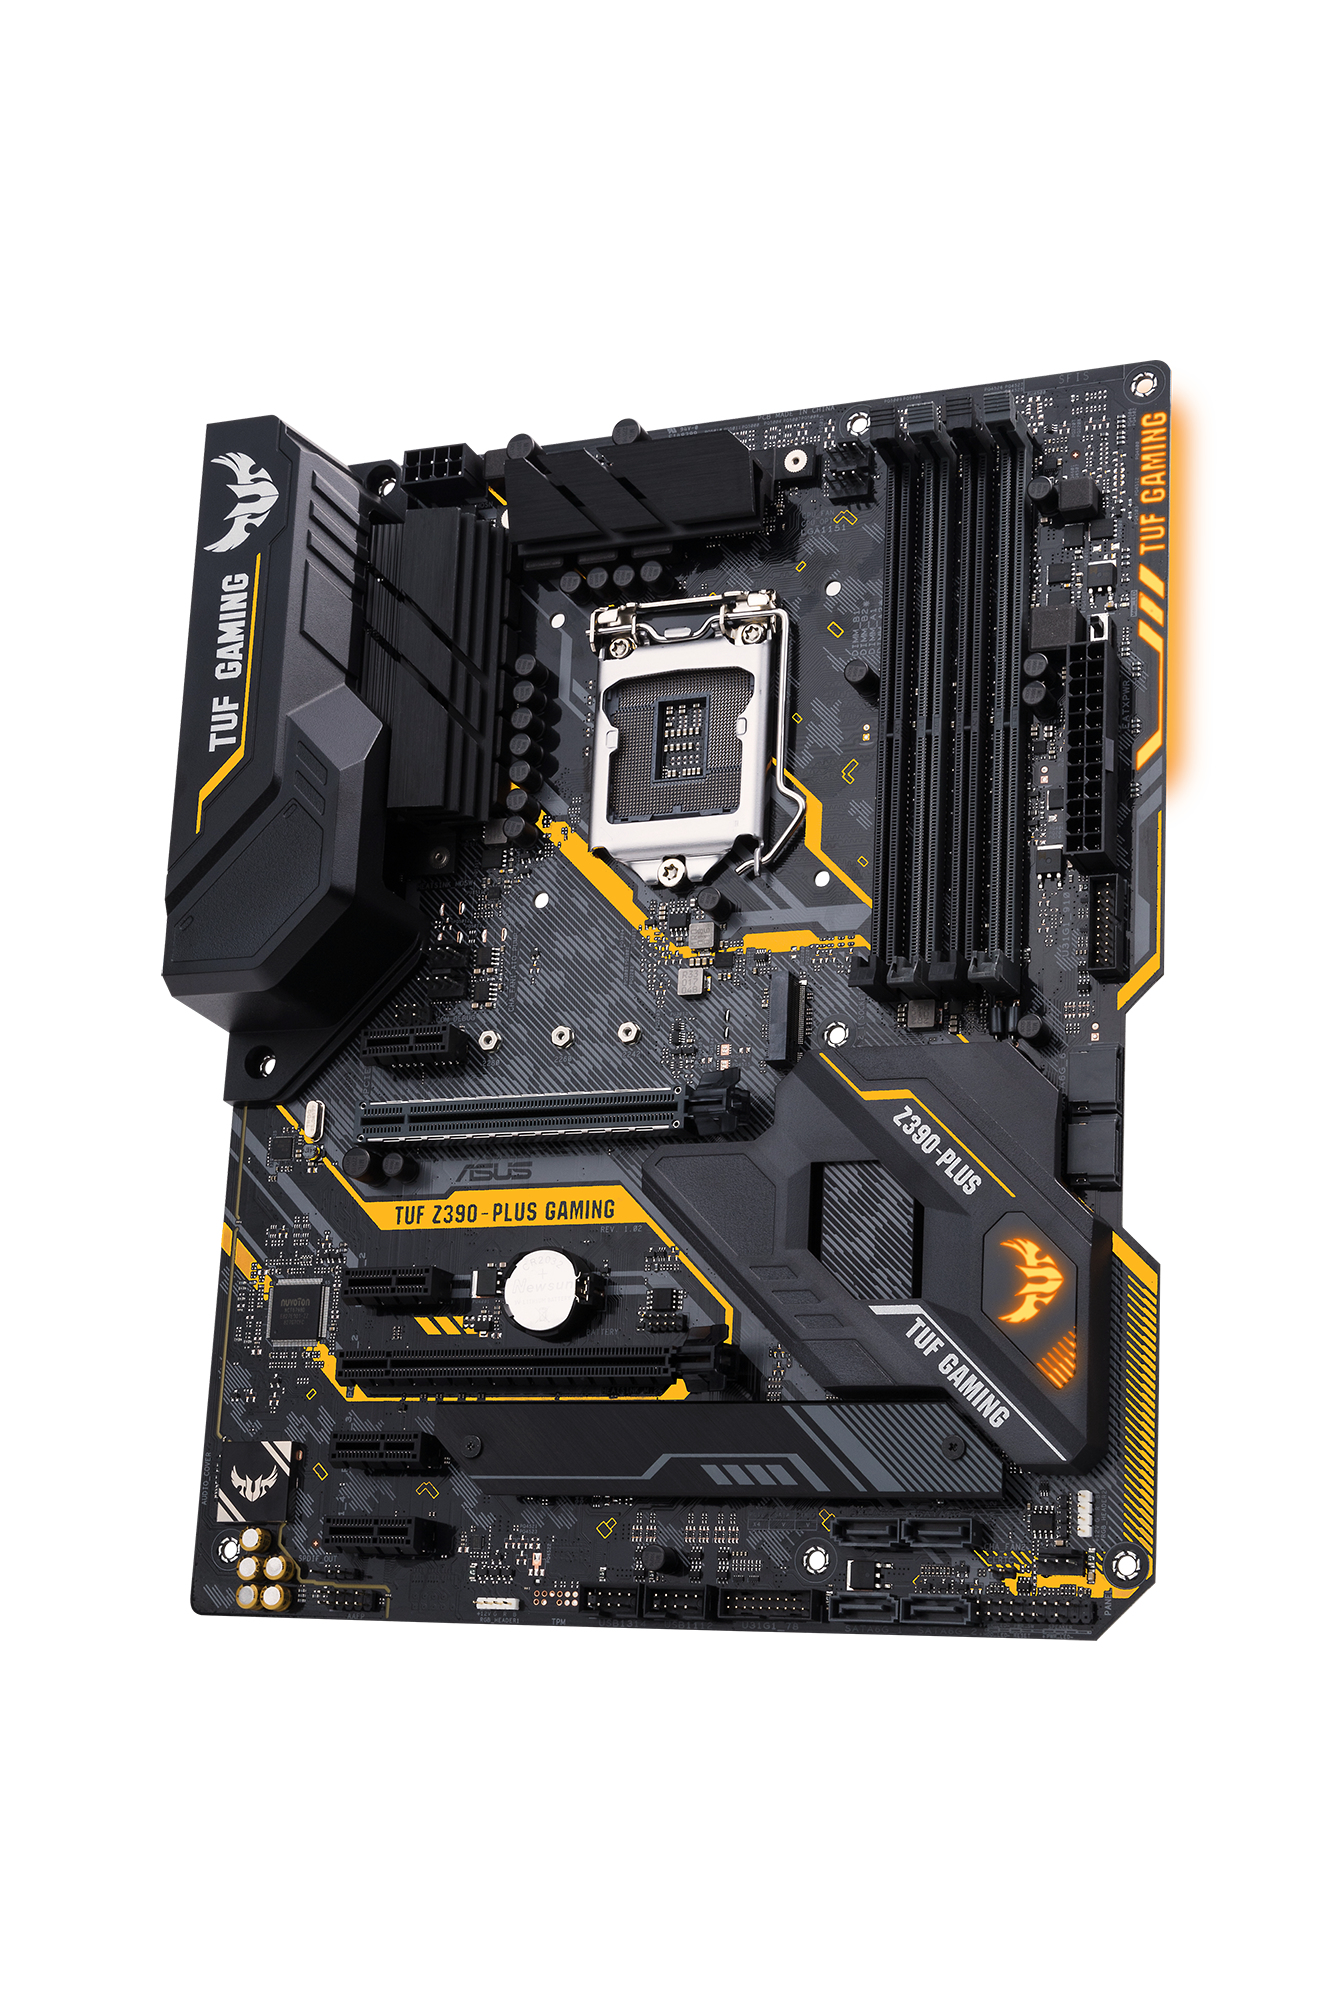 TUF Z390-PLUS GAMING LGA 1151 (ZóCALO H4) INTEL Z390 ATX